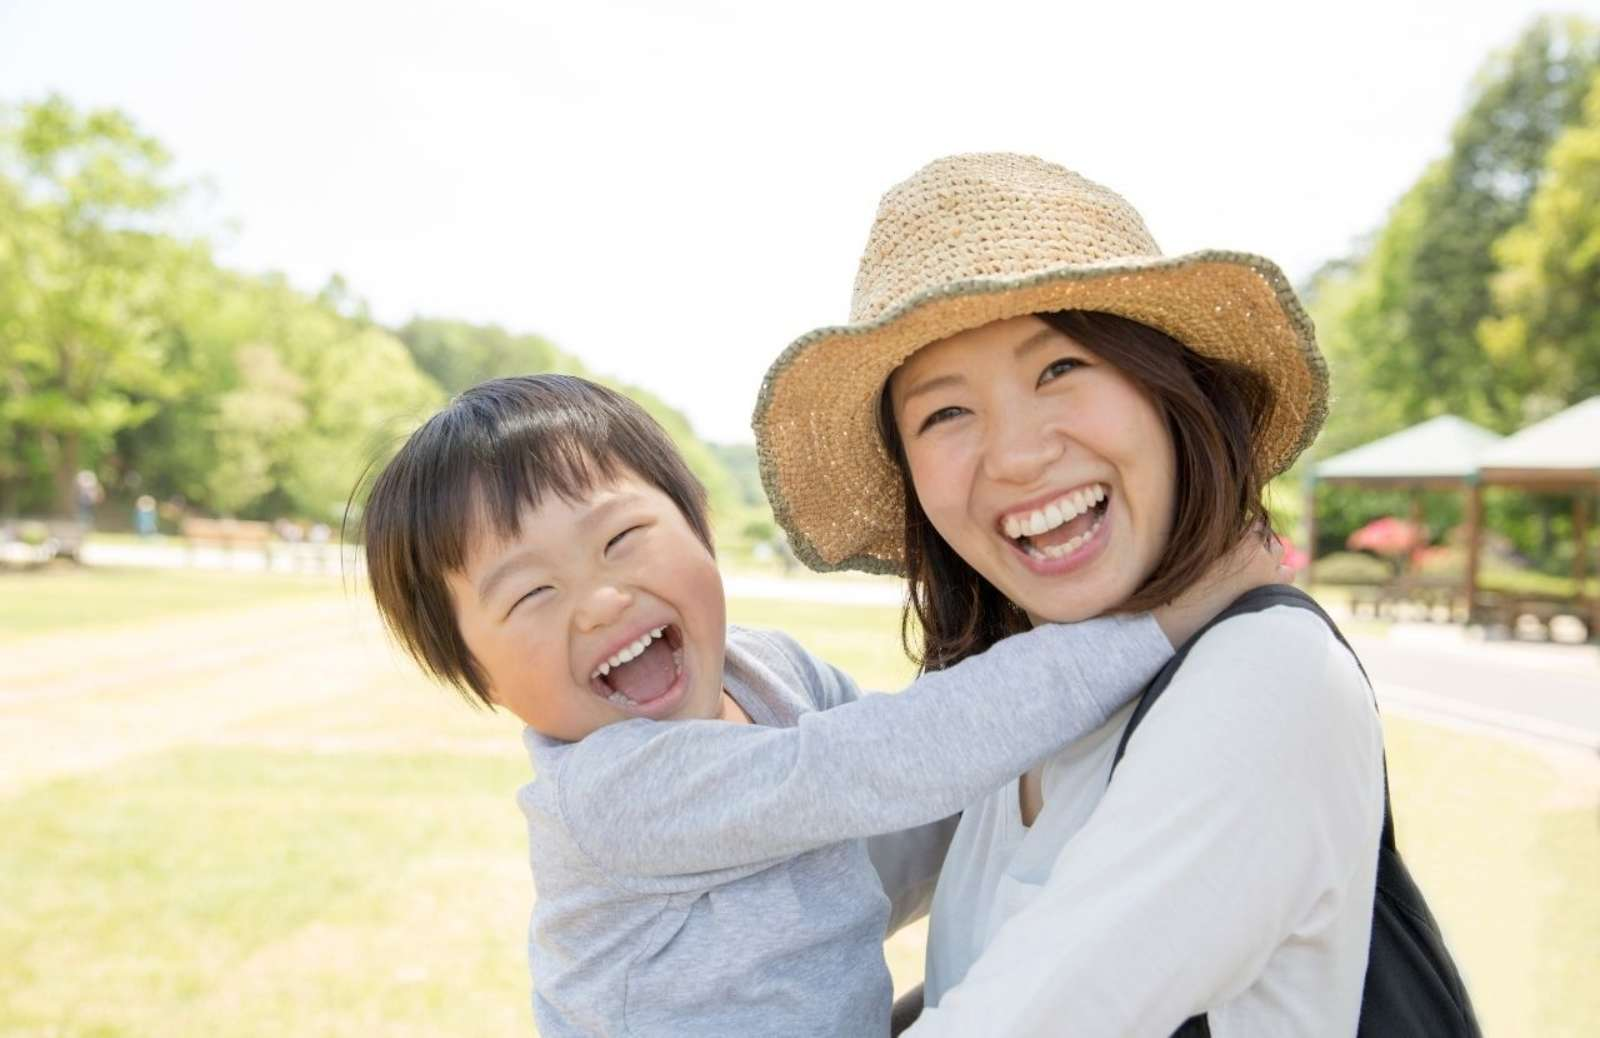 Asian woman smiling while holding smiling son